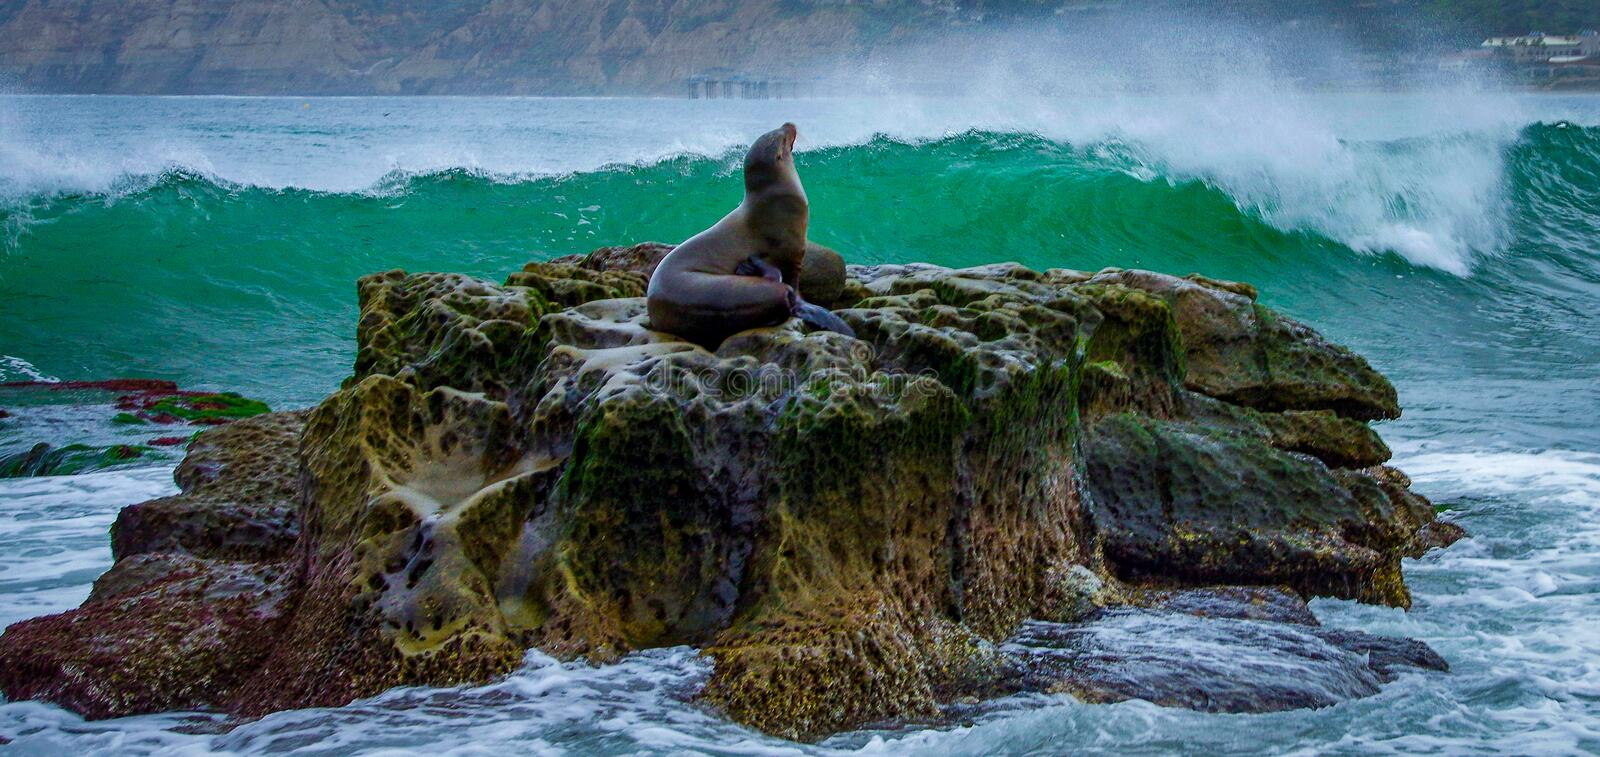 A sea lion strikes majestic pose on rock outcrop as large breaking wave approaches at La Jolla Cove. A sea lion rests serenely at home on a rock outcrop while stock photography